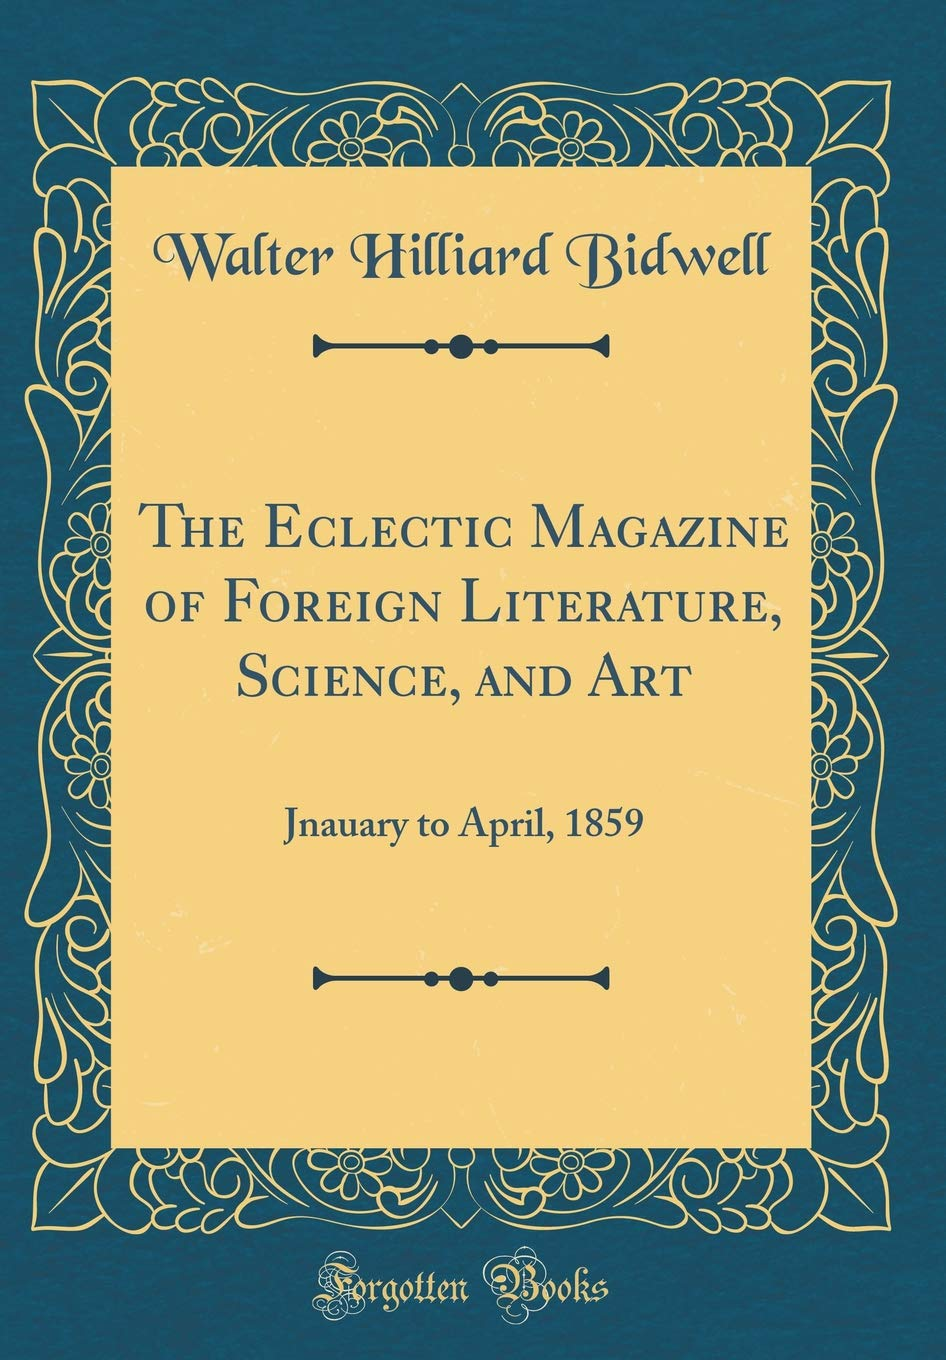 Download The Eclectic Magazine of Foreign Literature, Science, and Art: Jnauary to April, 1859 (Classic Reprint) ebook